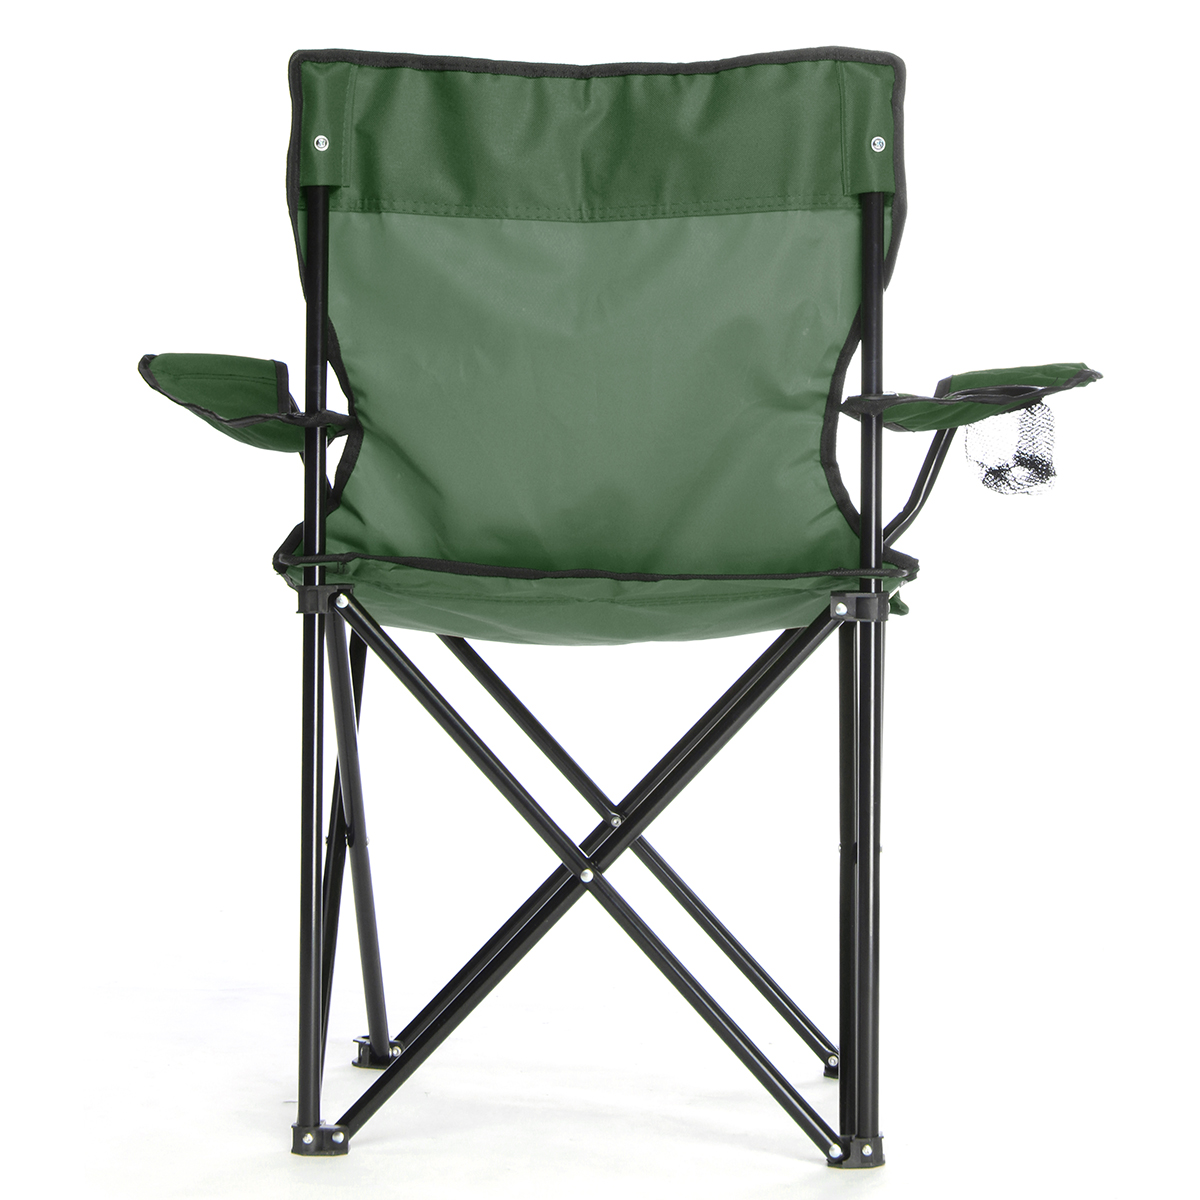 fishing chair add ons dining room covers cotton chairs 50x50x80cm folding camping seat